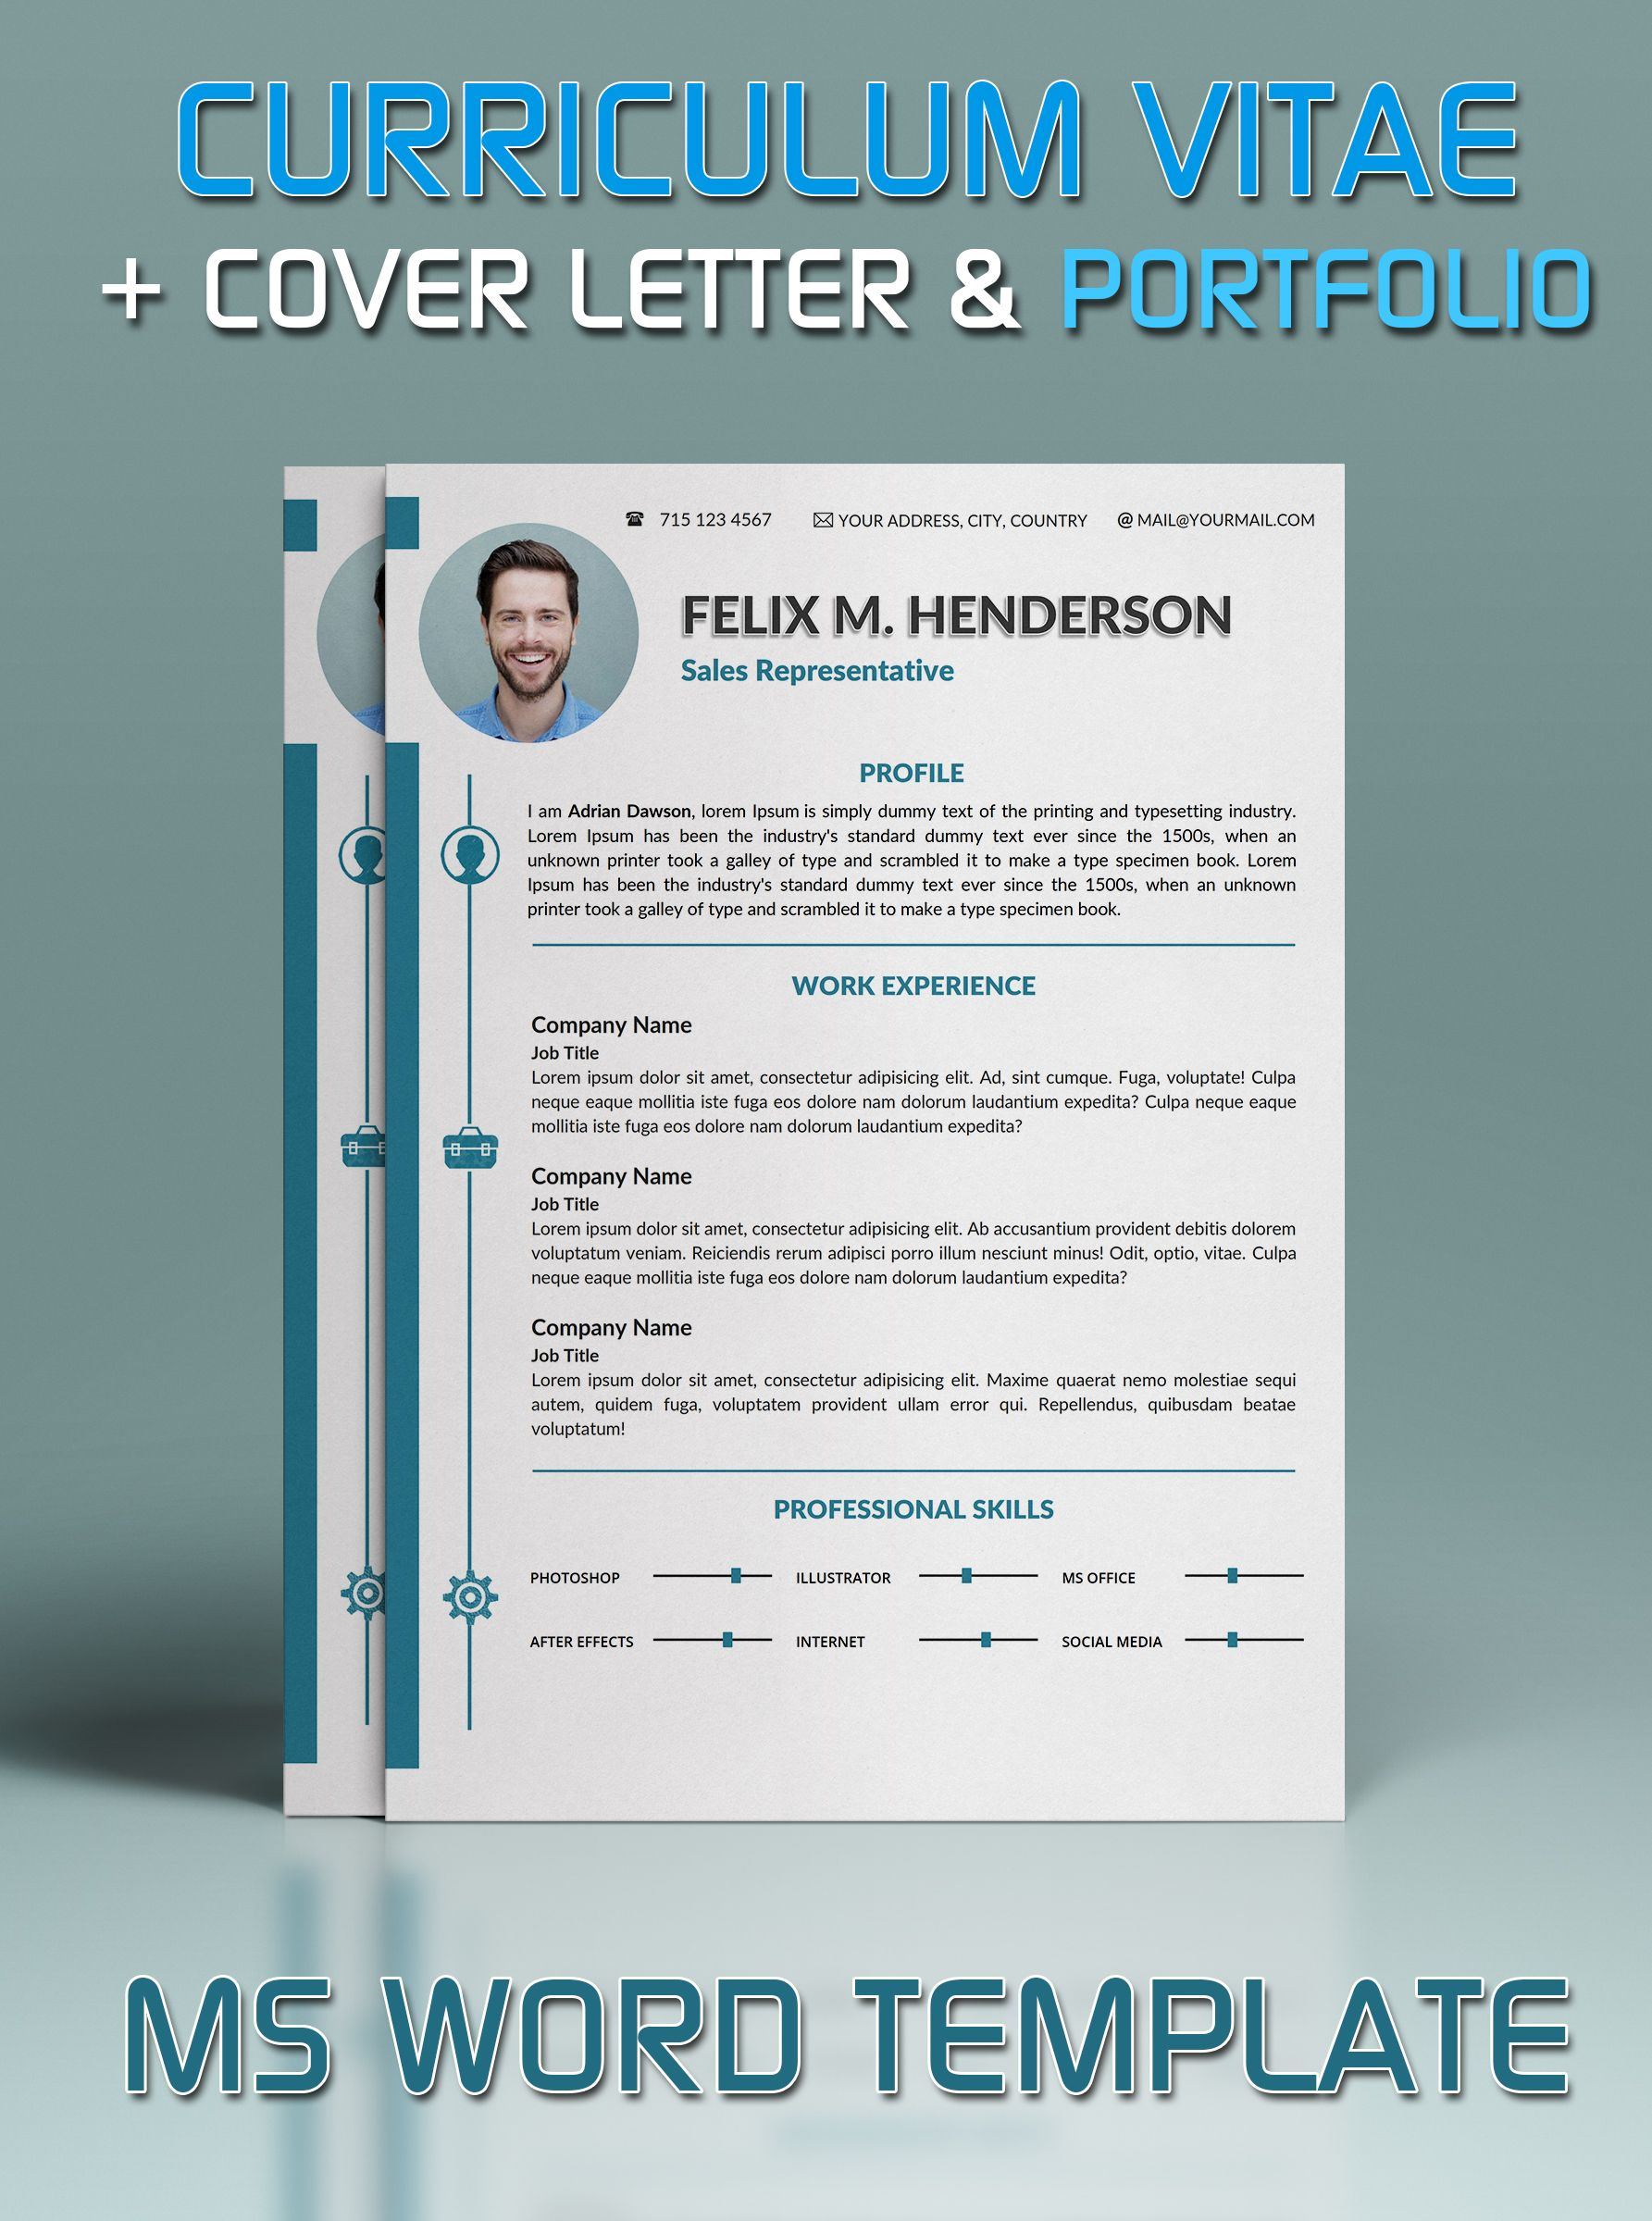 Resume template in microsoft word cover letter and portfolio resume template in microsoft word cover letter and portfolio template madrichimfo Image collections